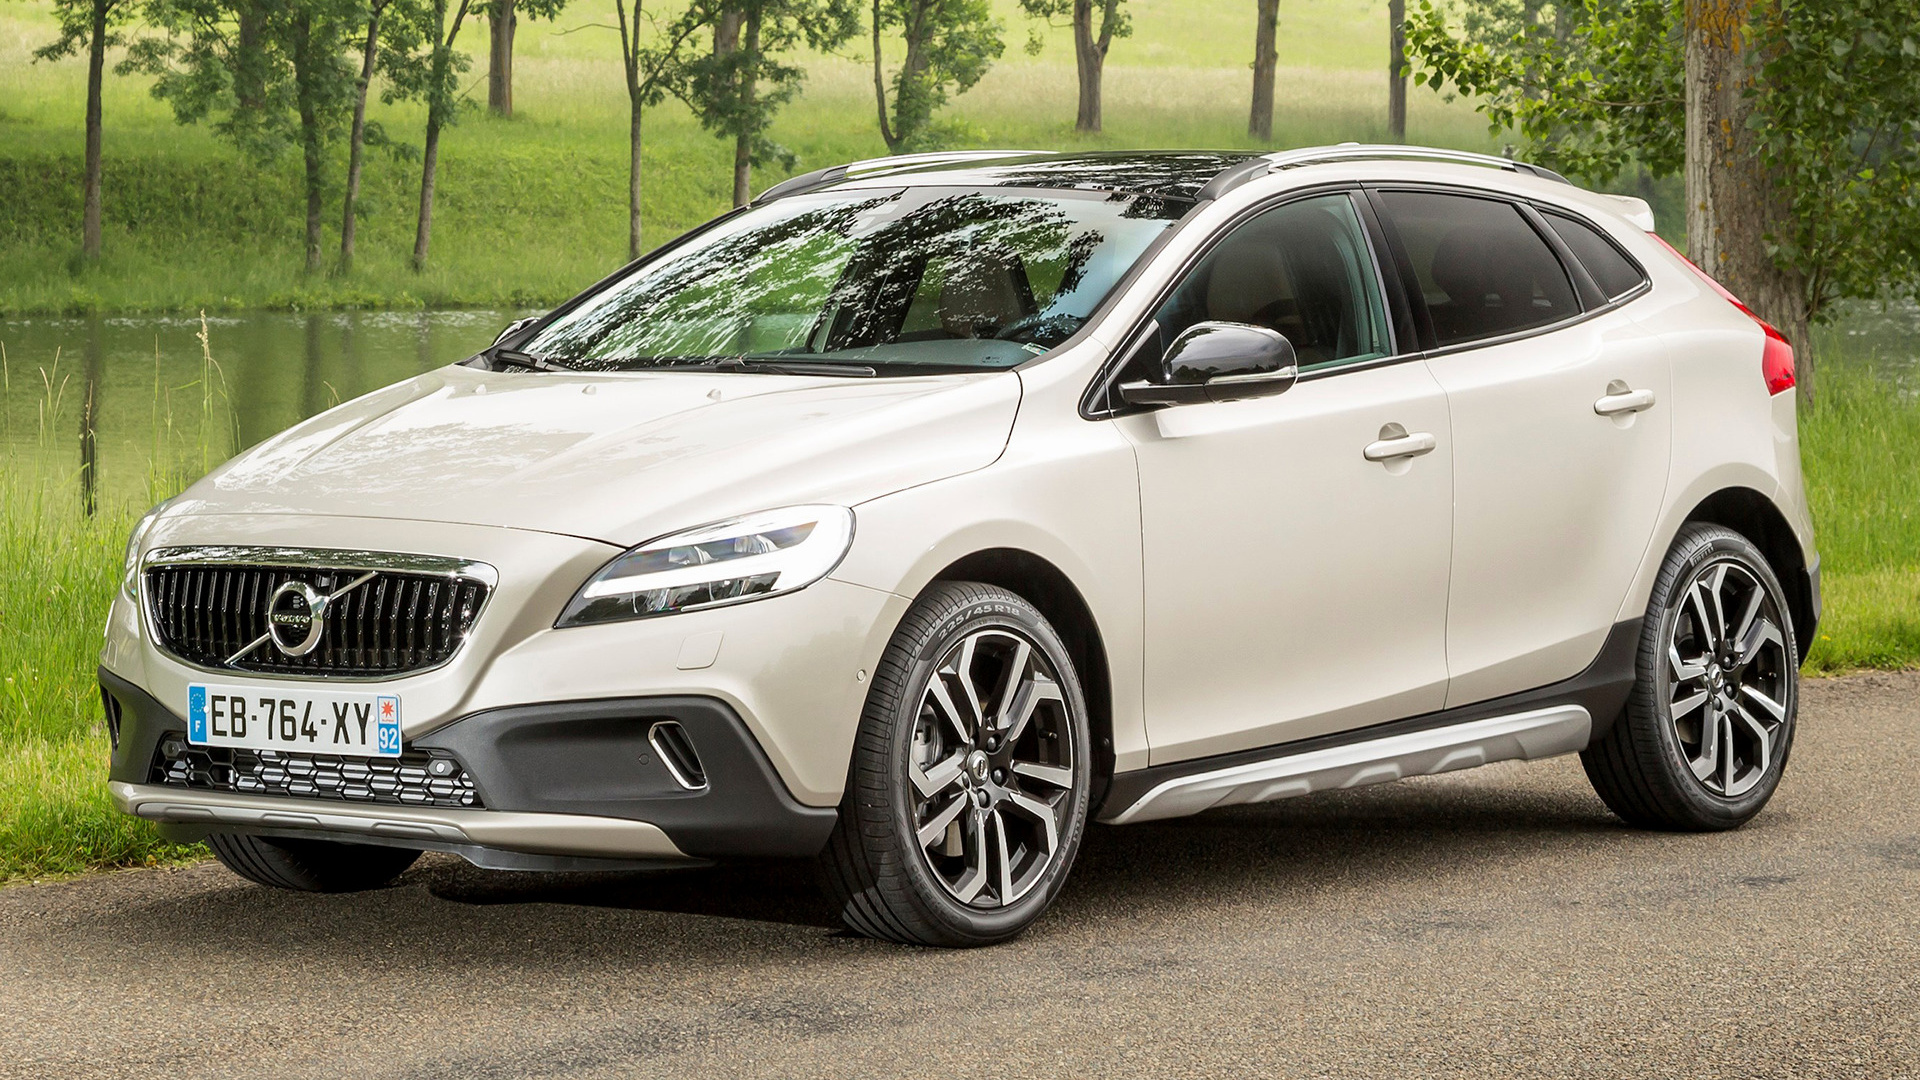 2016 Volvo V40 Cross Country   Wallpapers and HD Images Car Pixel 1920x1080